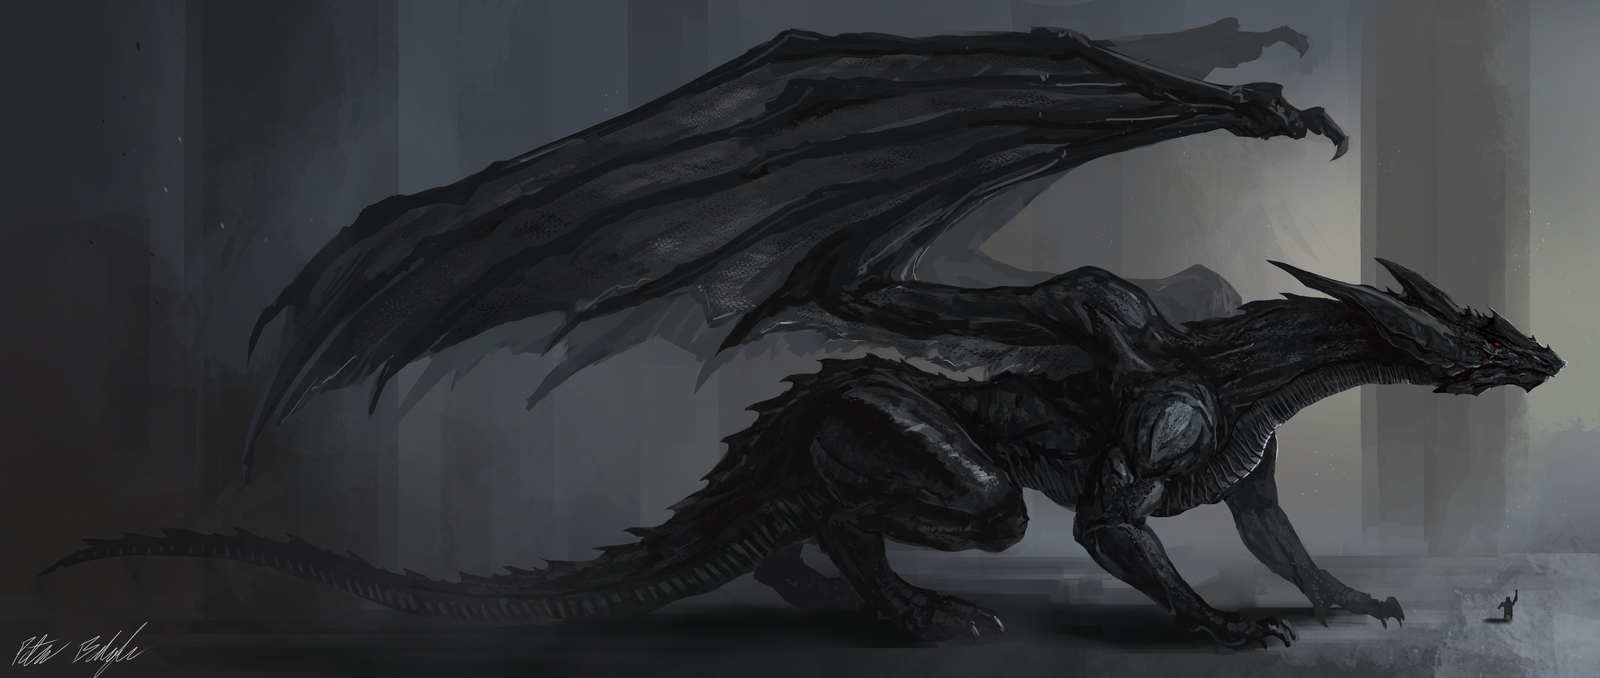 X Dragon Wallpaper High Quality Photos Of 1058 756 Black Dragon